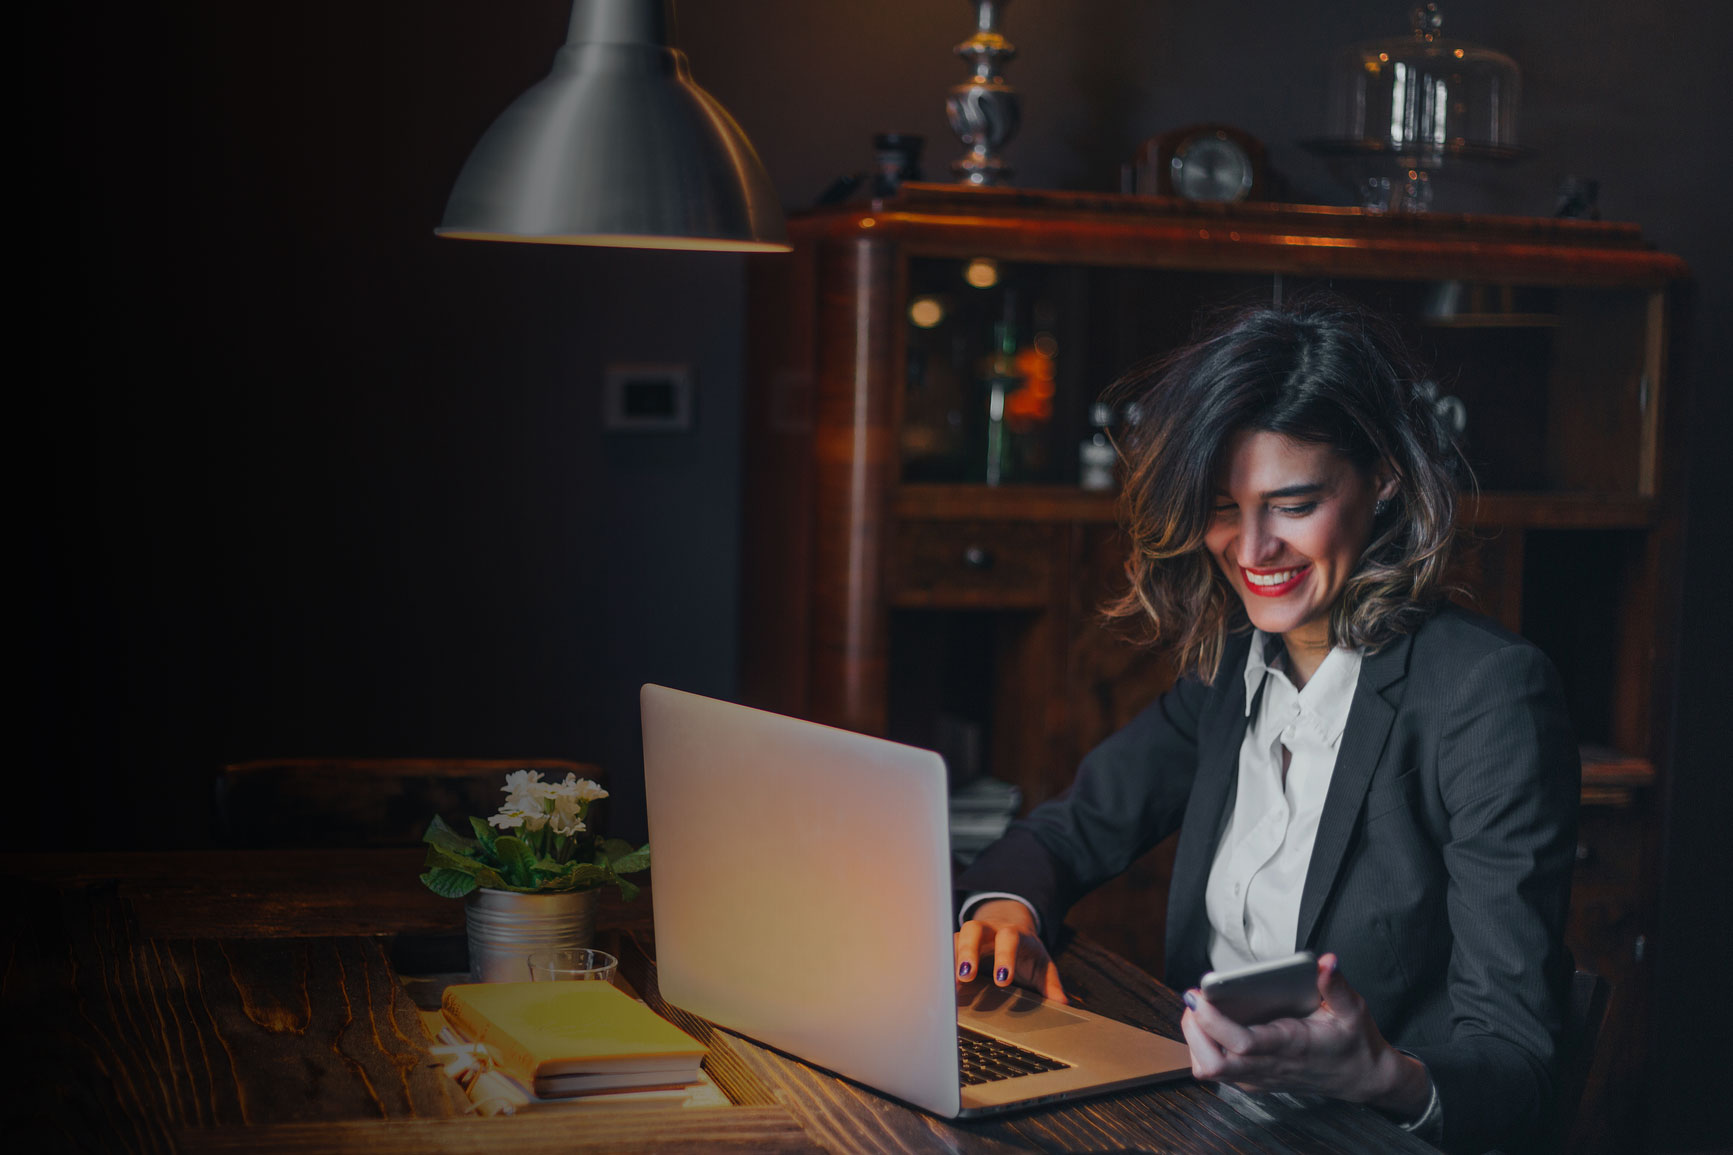 Woman in a darker office working on a laptop, smiling down at her cellphone